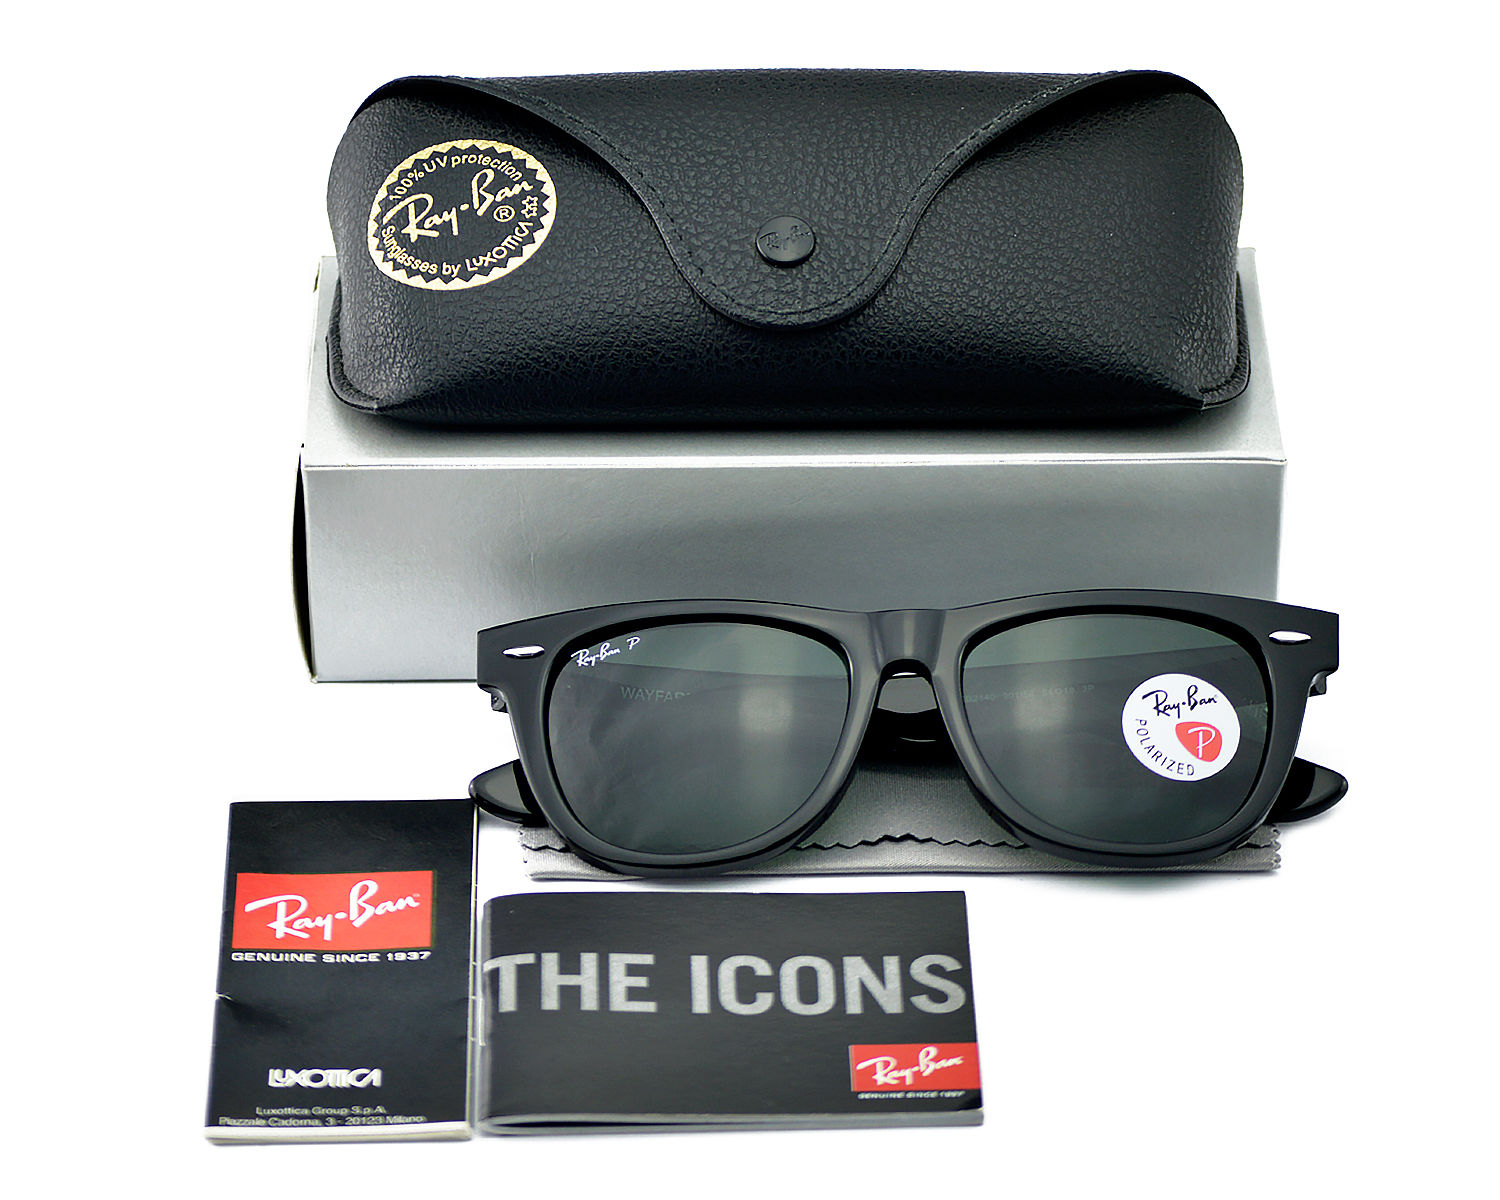 85d5b015c8 Ray Ban RB2140 901 58 Original Wayfarer Classics Black Frame  Polarized  Green Classic G-15 lenses Sunglasses 54mm